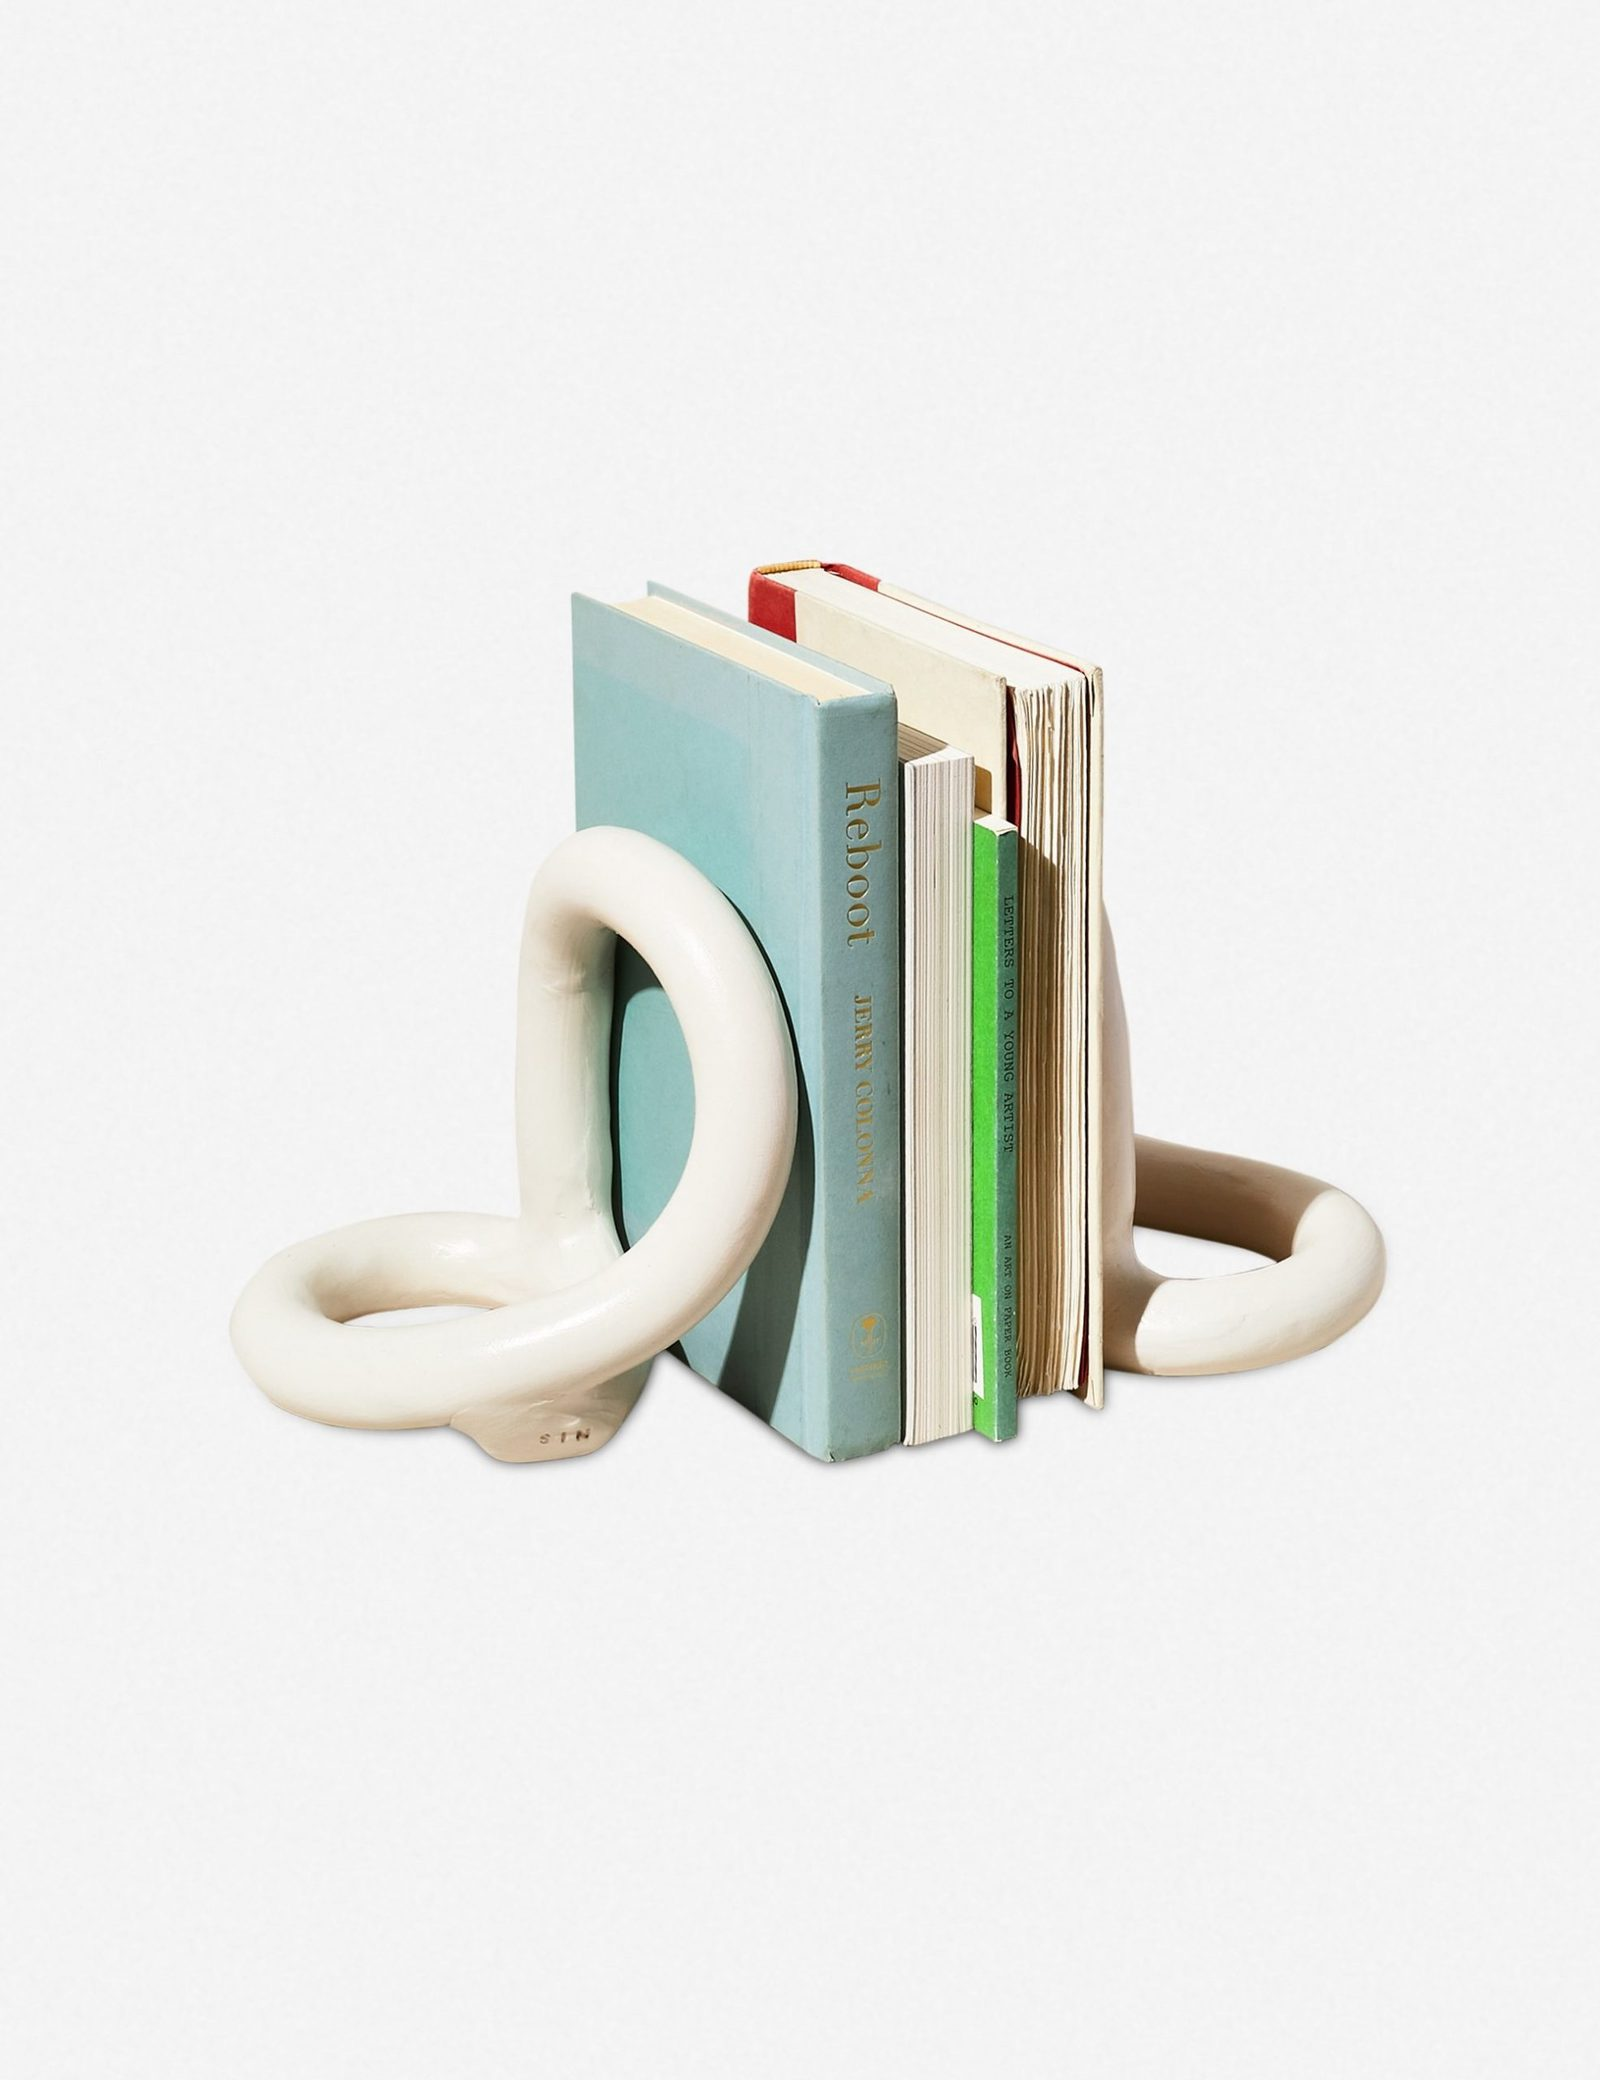 Add a Touch of Glamour with these Unique Book Ends